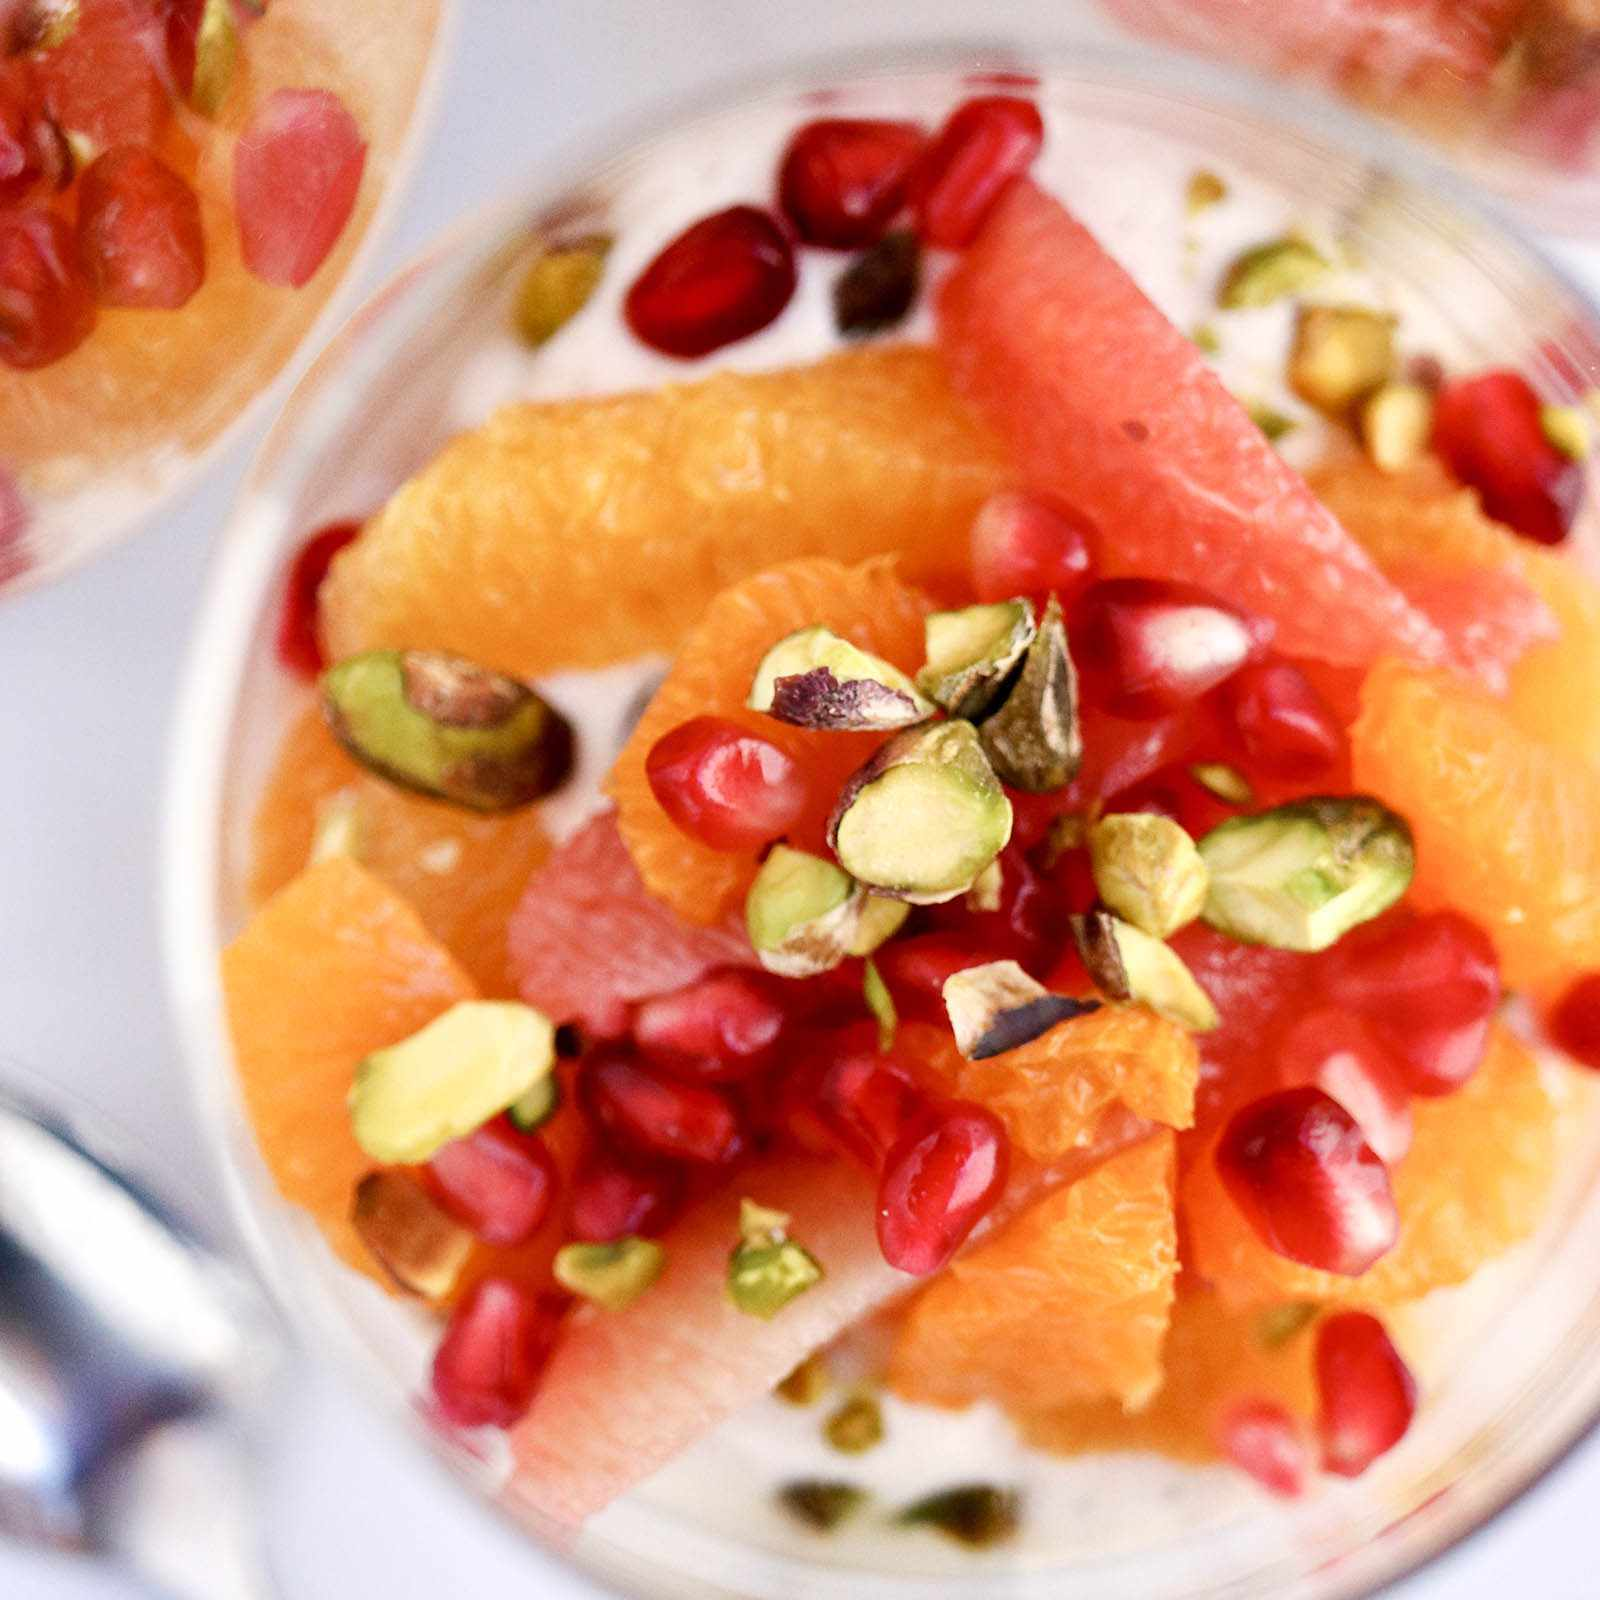 Top down shot of a glass of citrus fruit topped with seeds and nuts against a white surface.